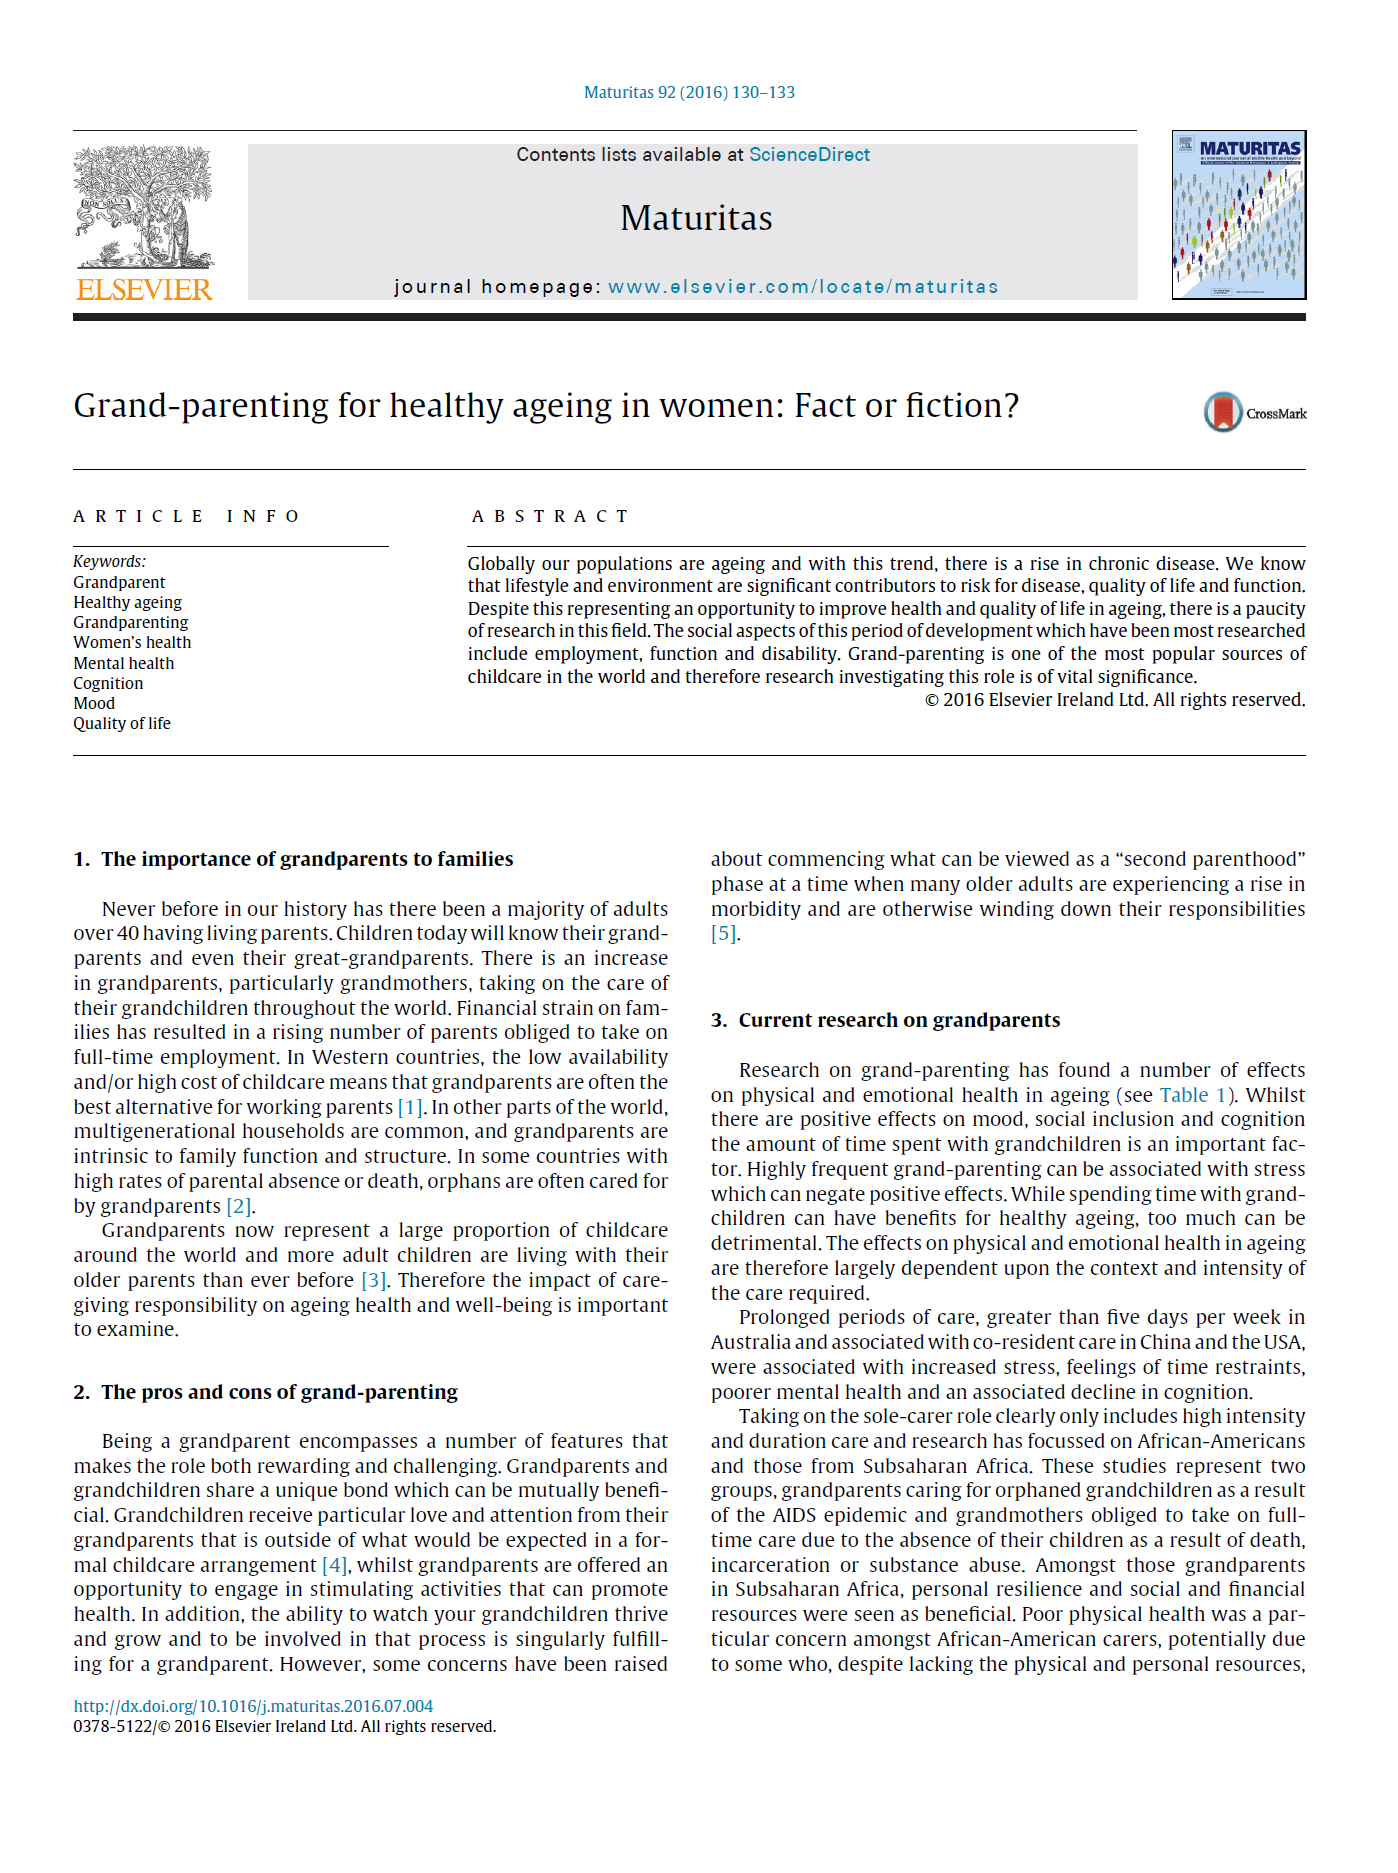 Grand-parenting for healthy ageing in women: Fact or fiction? - In spite of grand-parenting being the most common form of non-parental care, there has been a limited amount of research regarding the impact of grand-parenting on the health of ageing women. This editorial discusses previous research regarding grandparenting and health, and areas for future research.Citation: Campbell, S., et al. (2016). Grand-parenting for healthy ageing in women: Fact or fiction?Maturitas, 92, 130-133. doi:10.1016/j.maturitas.2016.07.004